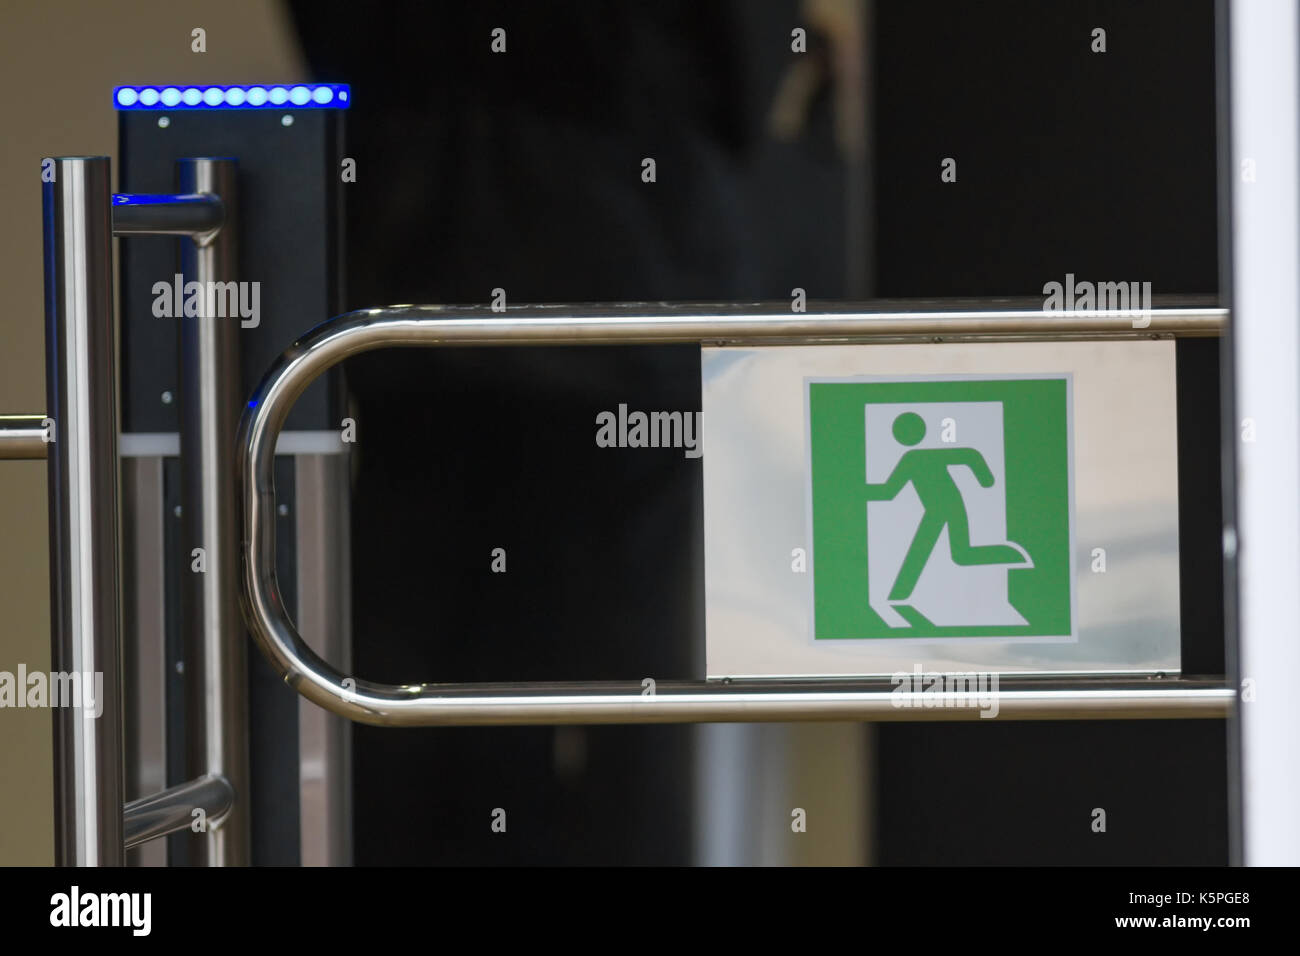 Sign - exit, green emergency exit on turnstile - Stock Image